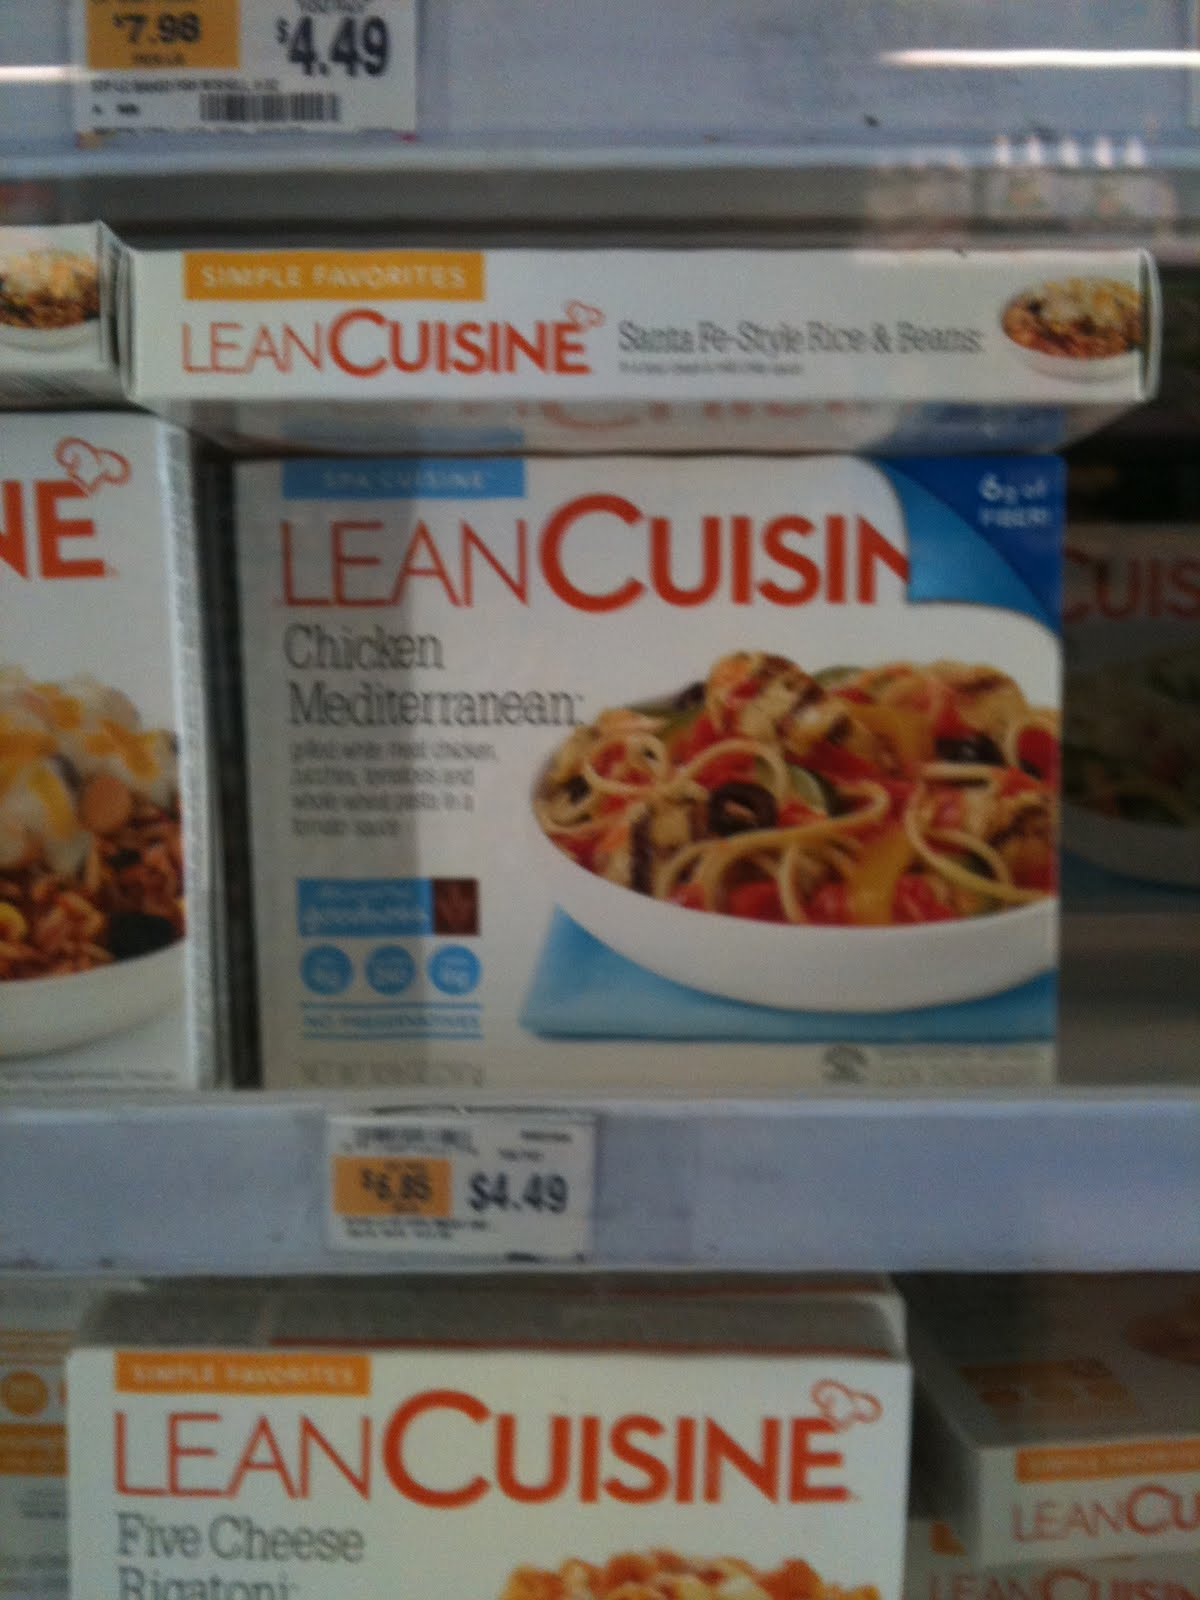 The concrete jungle chronicles clean up on aisle 3 4 for 10 day try it lean cuisine